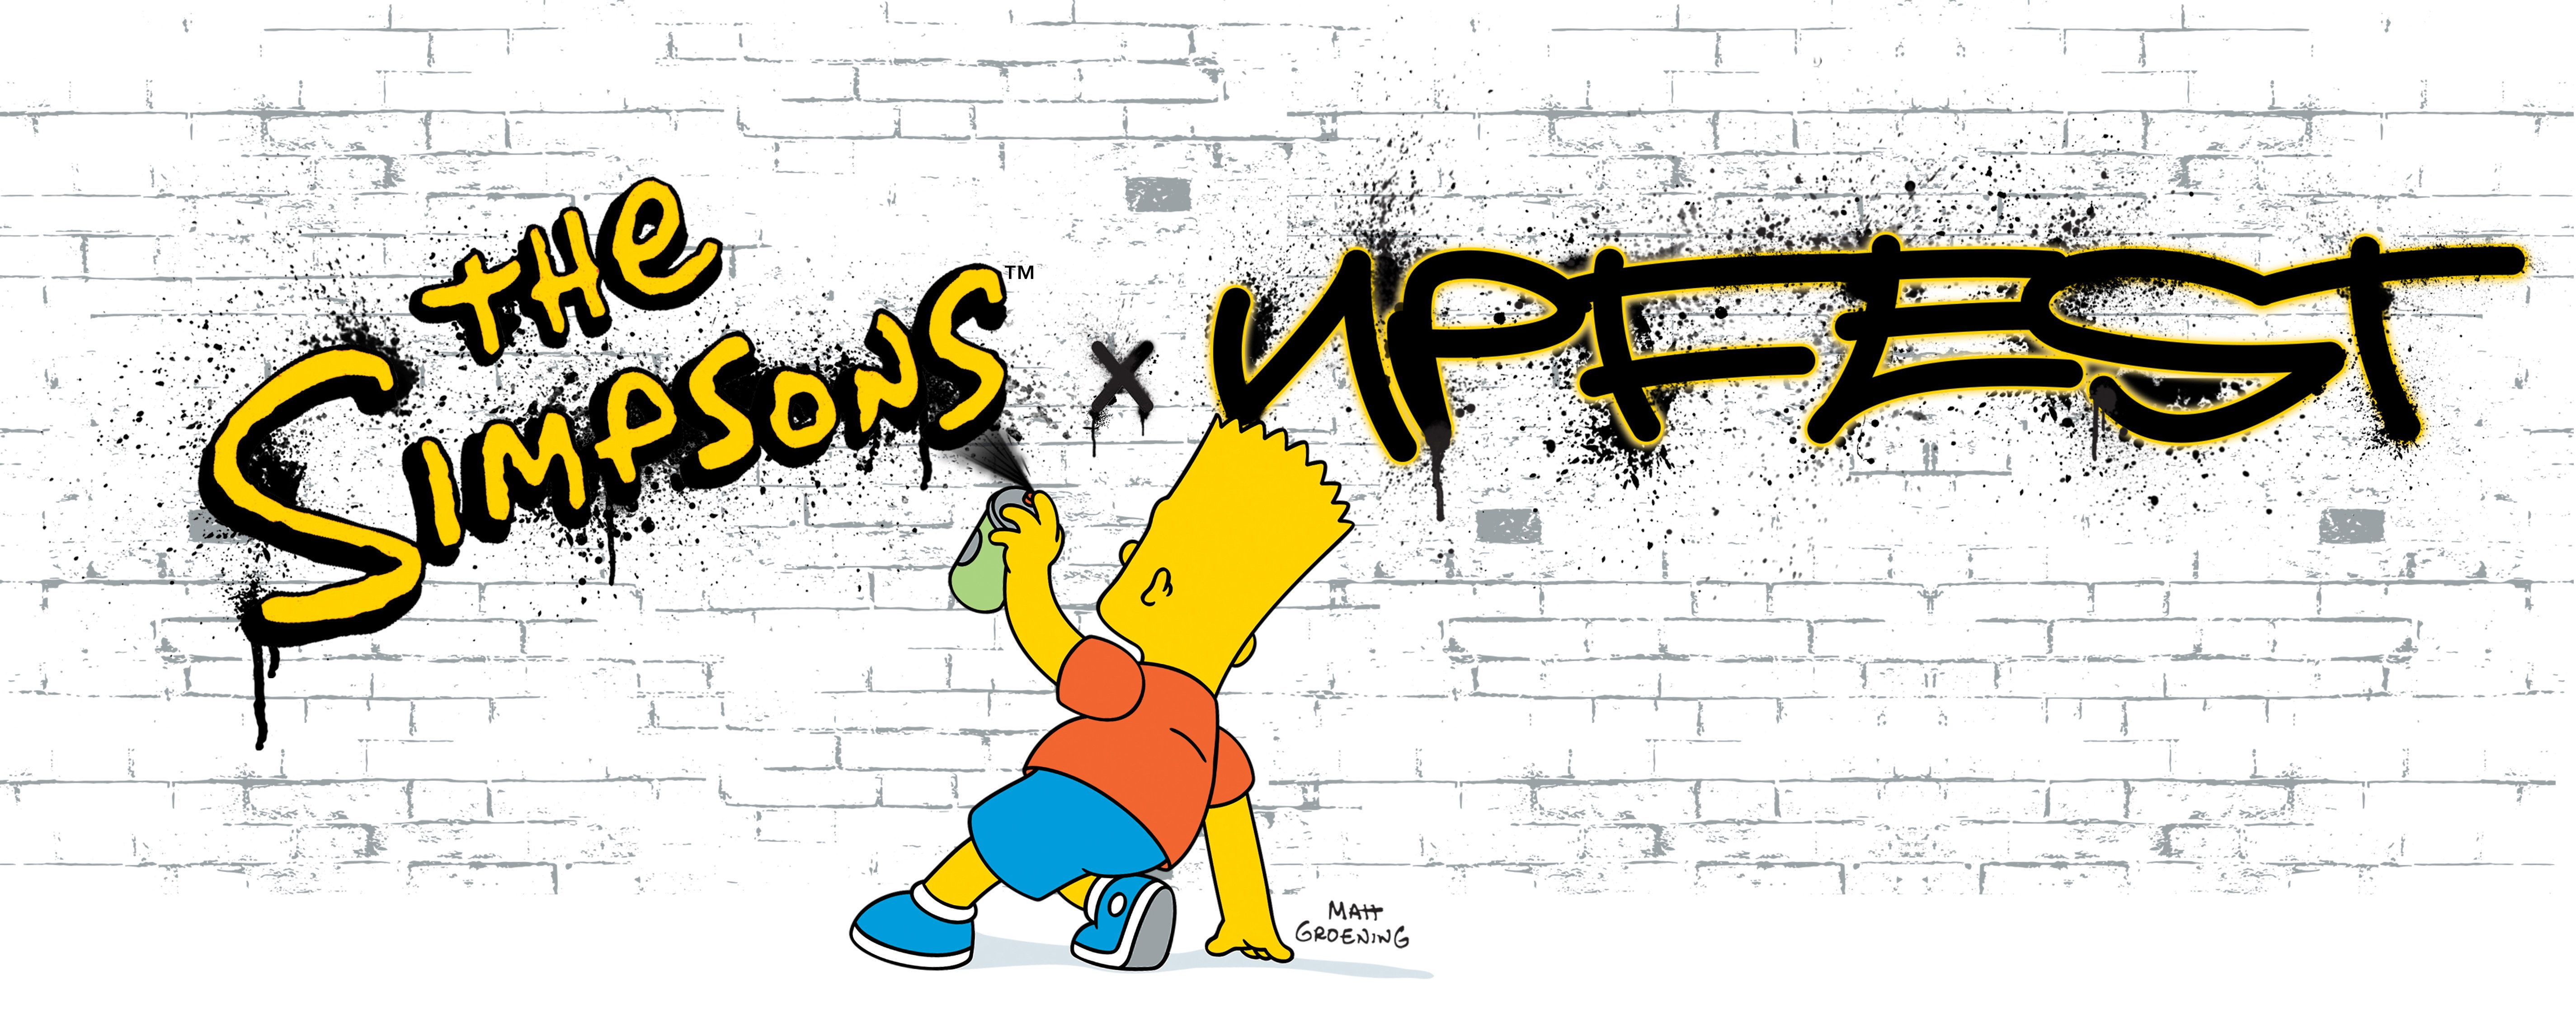 'The Simpsons' Are Getting A Street Art Makeover In Banksy's Home